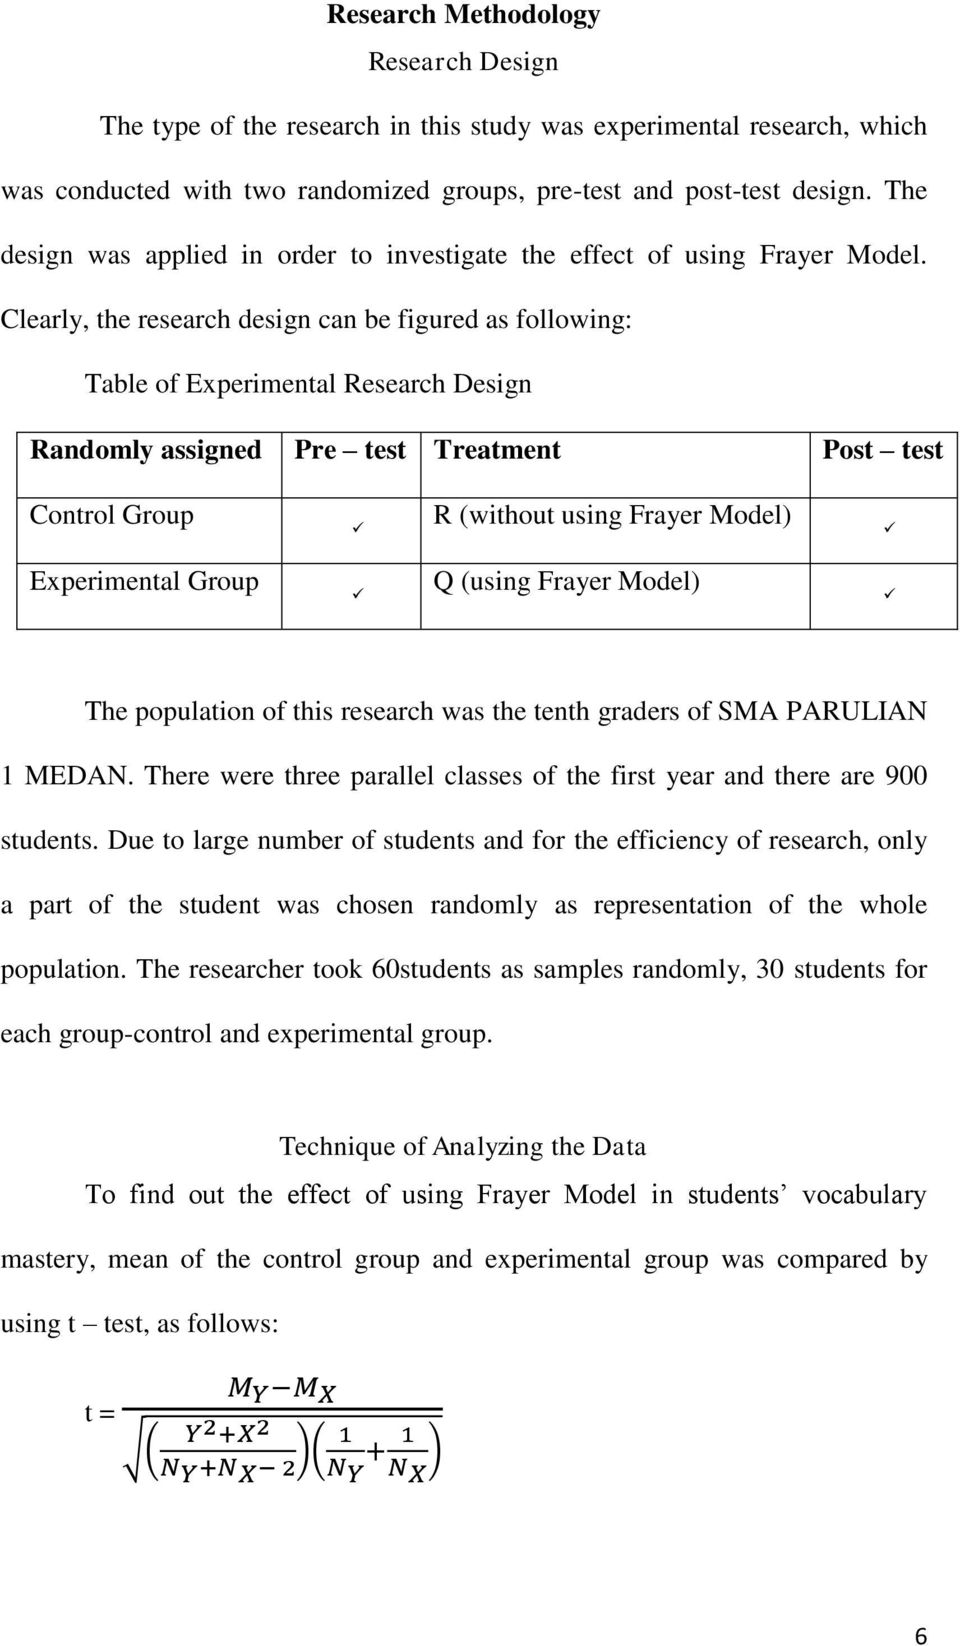 clearly the research design can be figured as following table of experimental research design